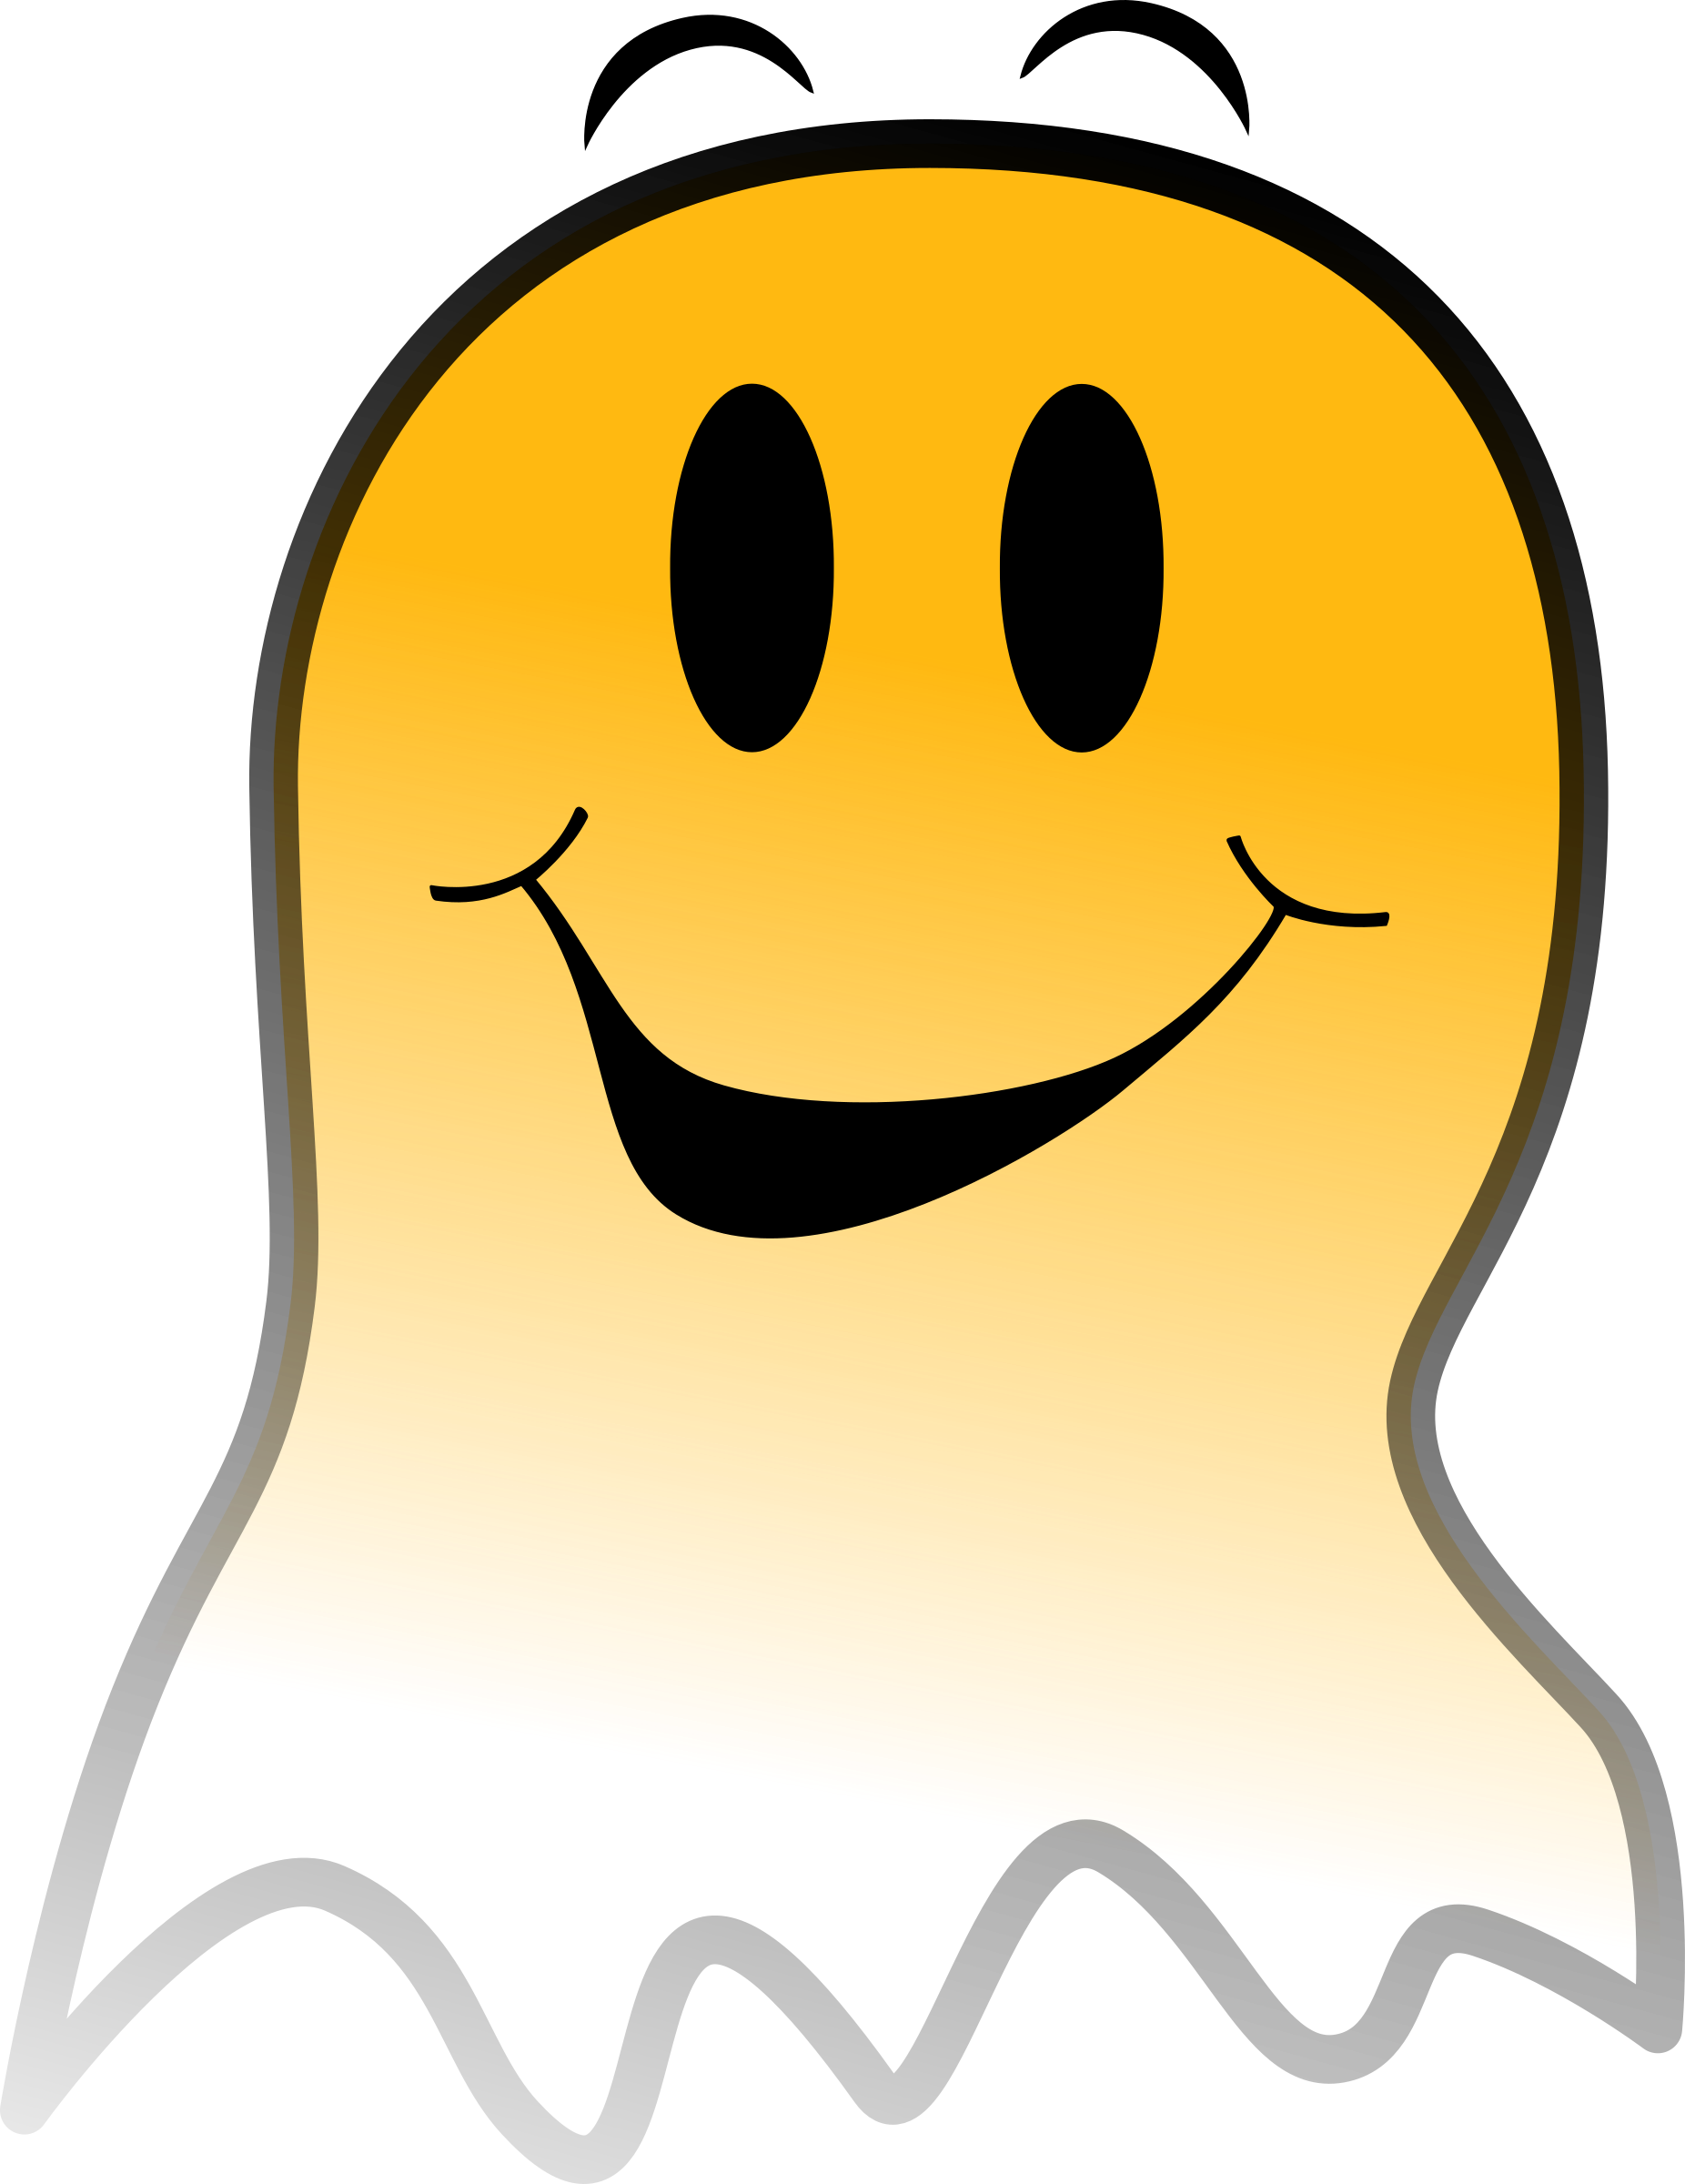 Smiley big image png. Clipart ghost spooky